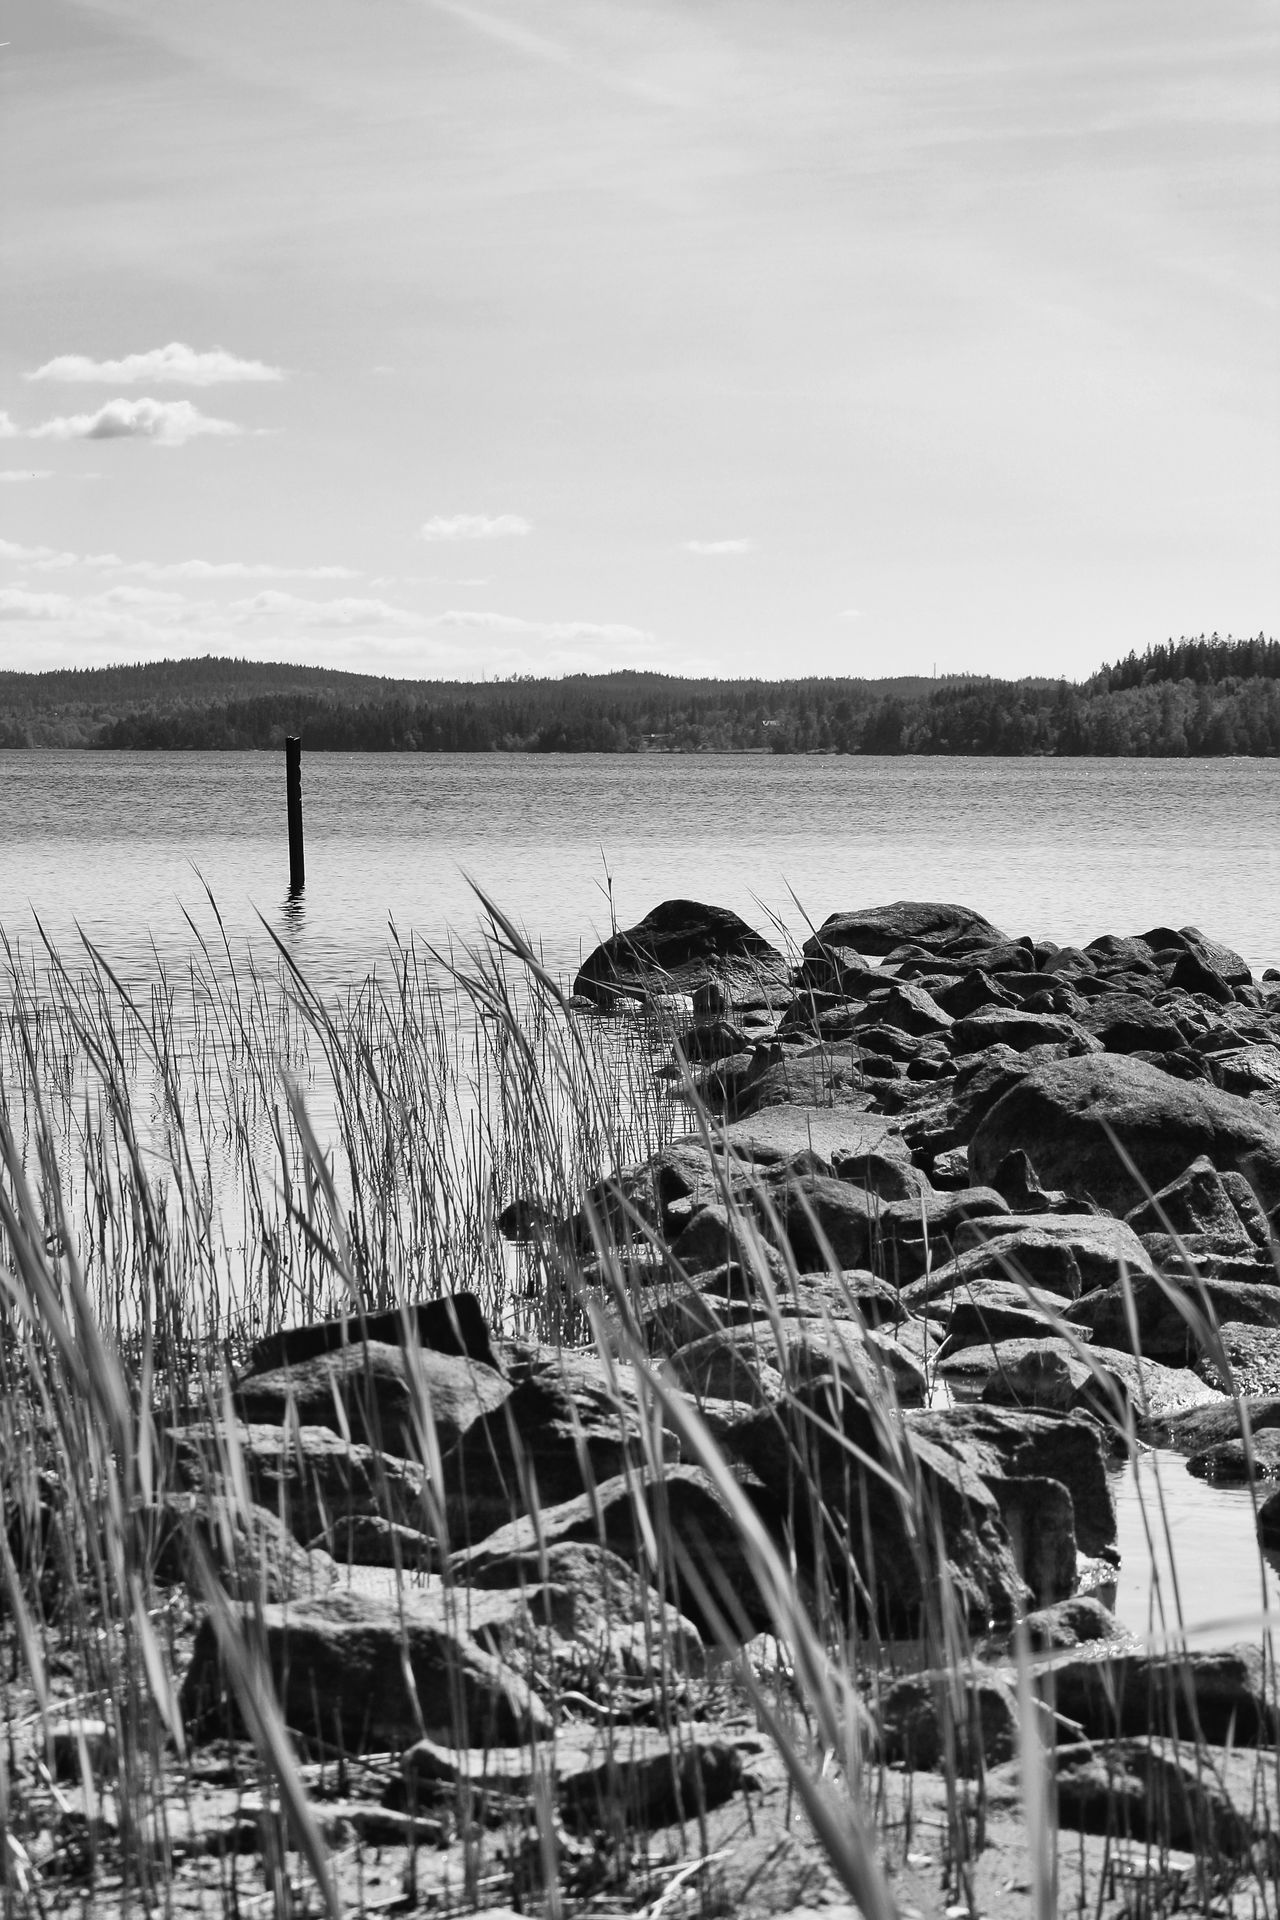 Beauty In Nature Black & White Black And White Day Exceptional Photographs EyeEmNewHere First Eyeem Photo Hello World Lake Lake View Lakescape Lakeshore Lakeside Nature Nature Outdoors Pier Reed Reeds Rock - Object Scenics Sea Sea And Sky Stone Water